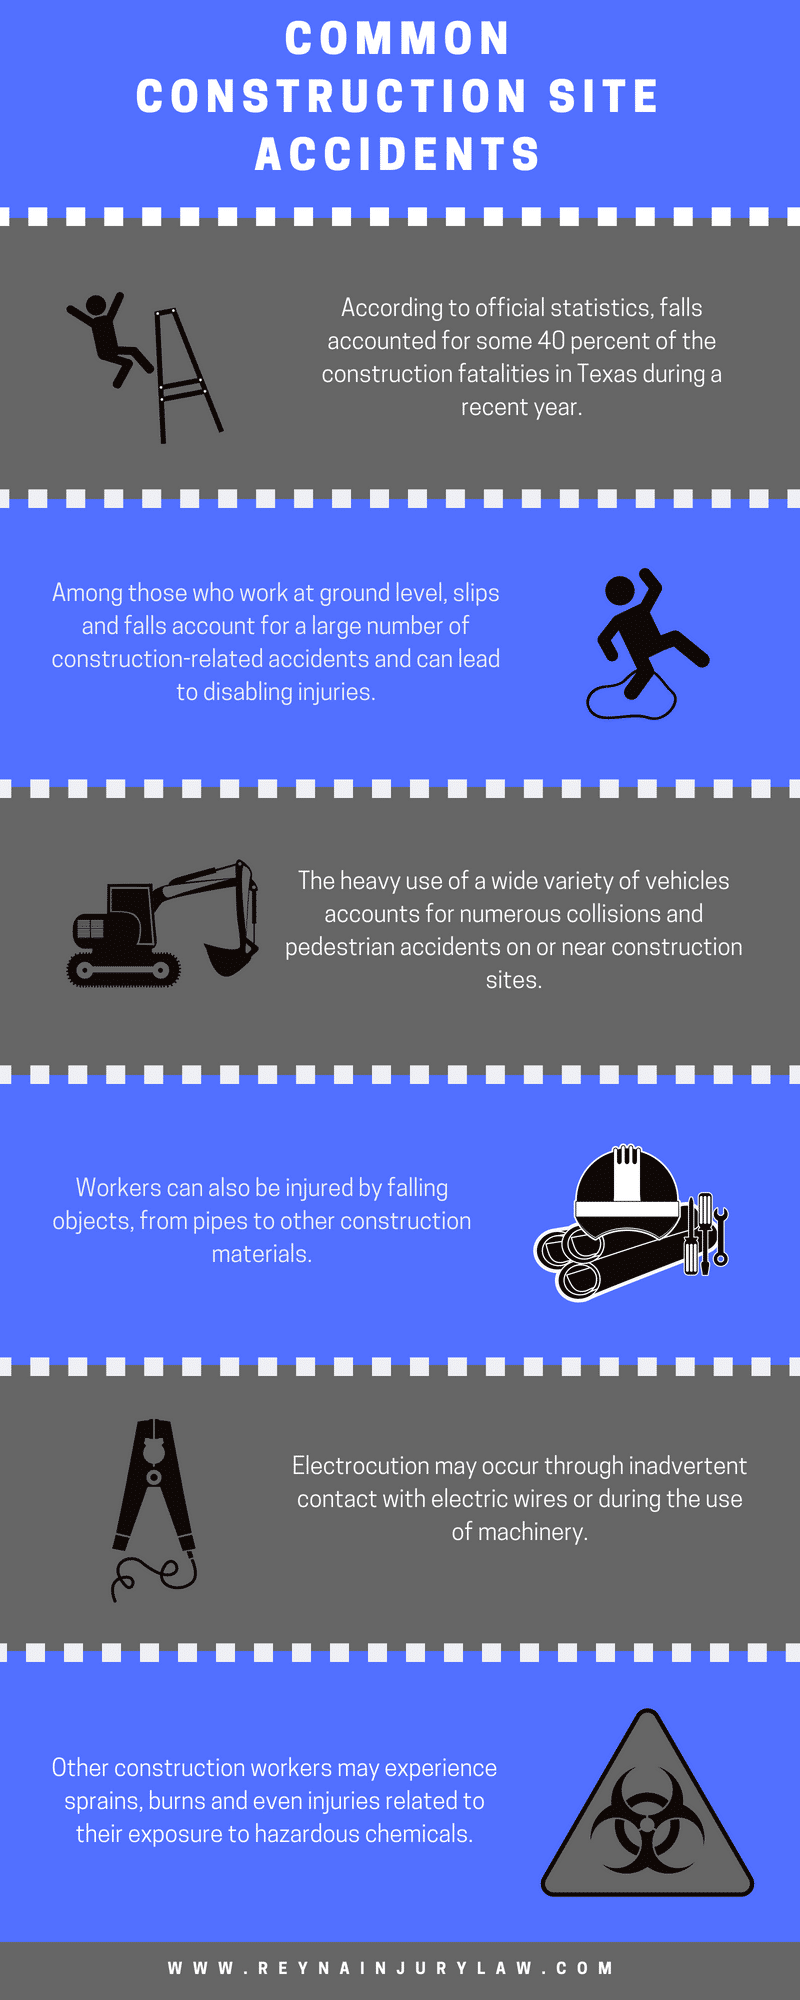 Infographic showing some of the most common construction site accidents